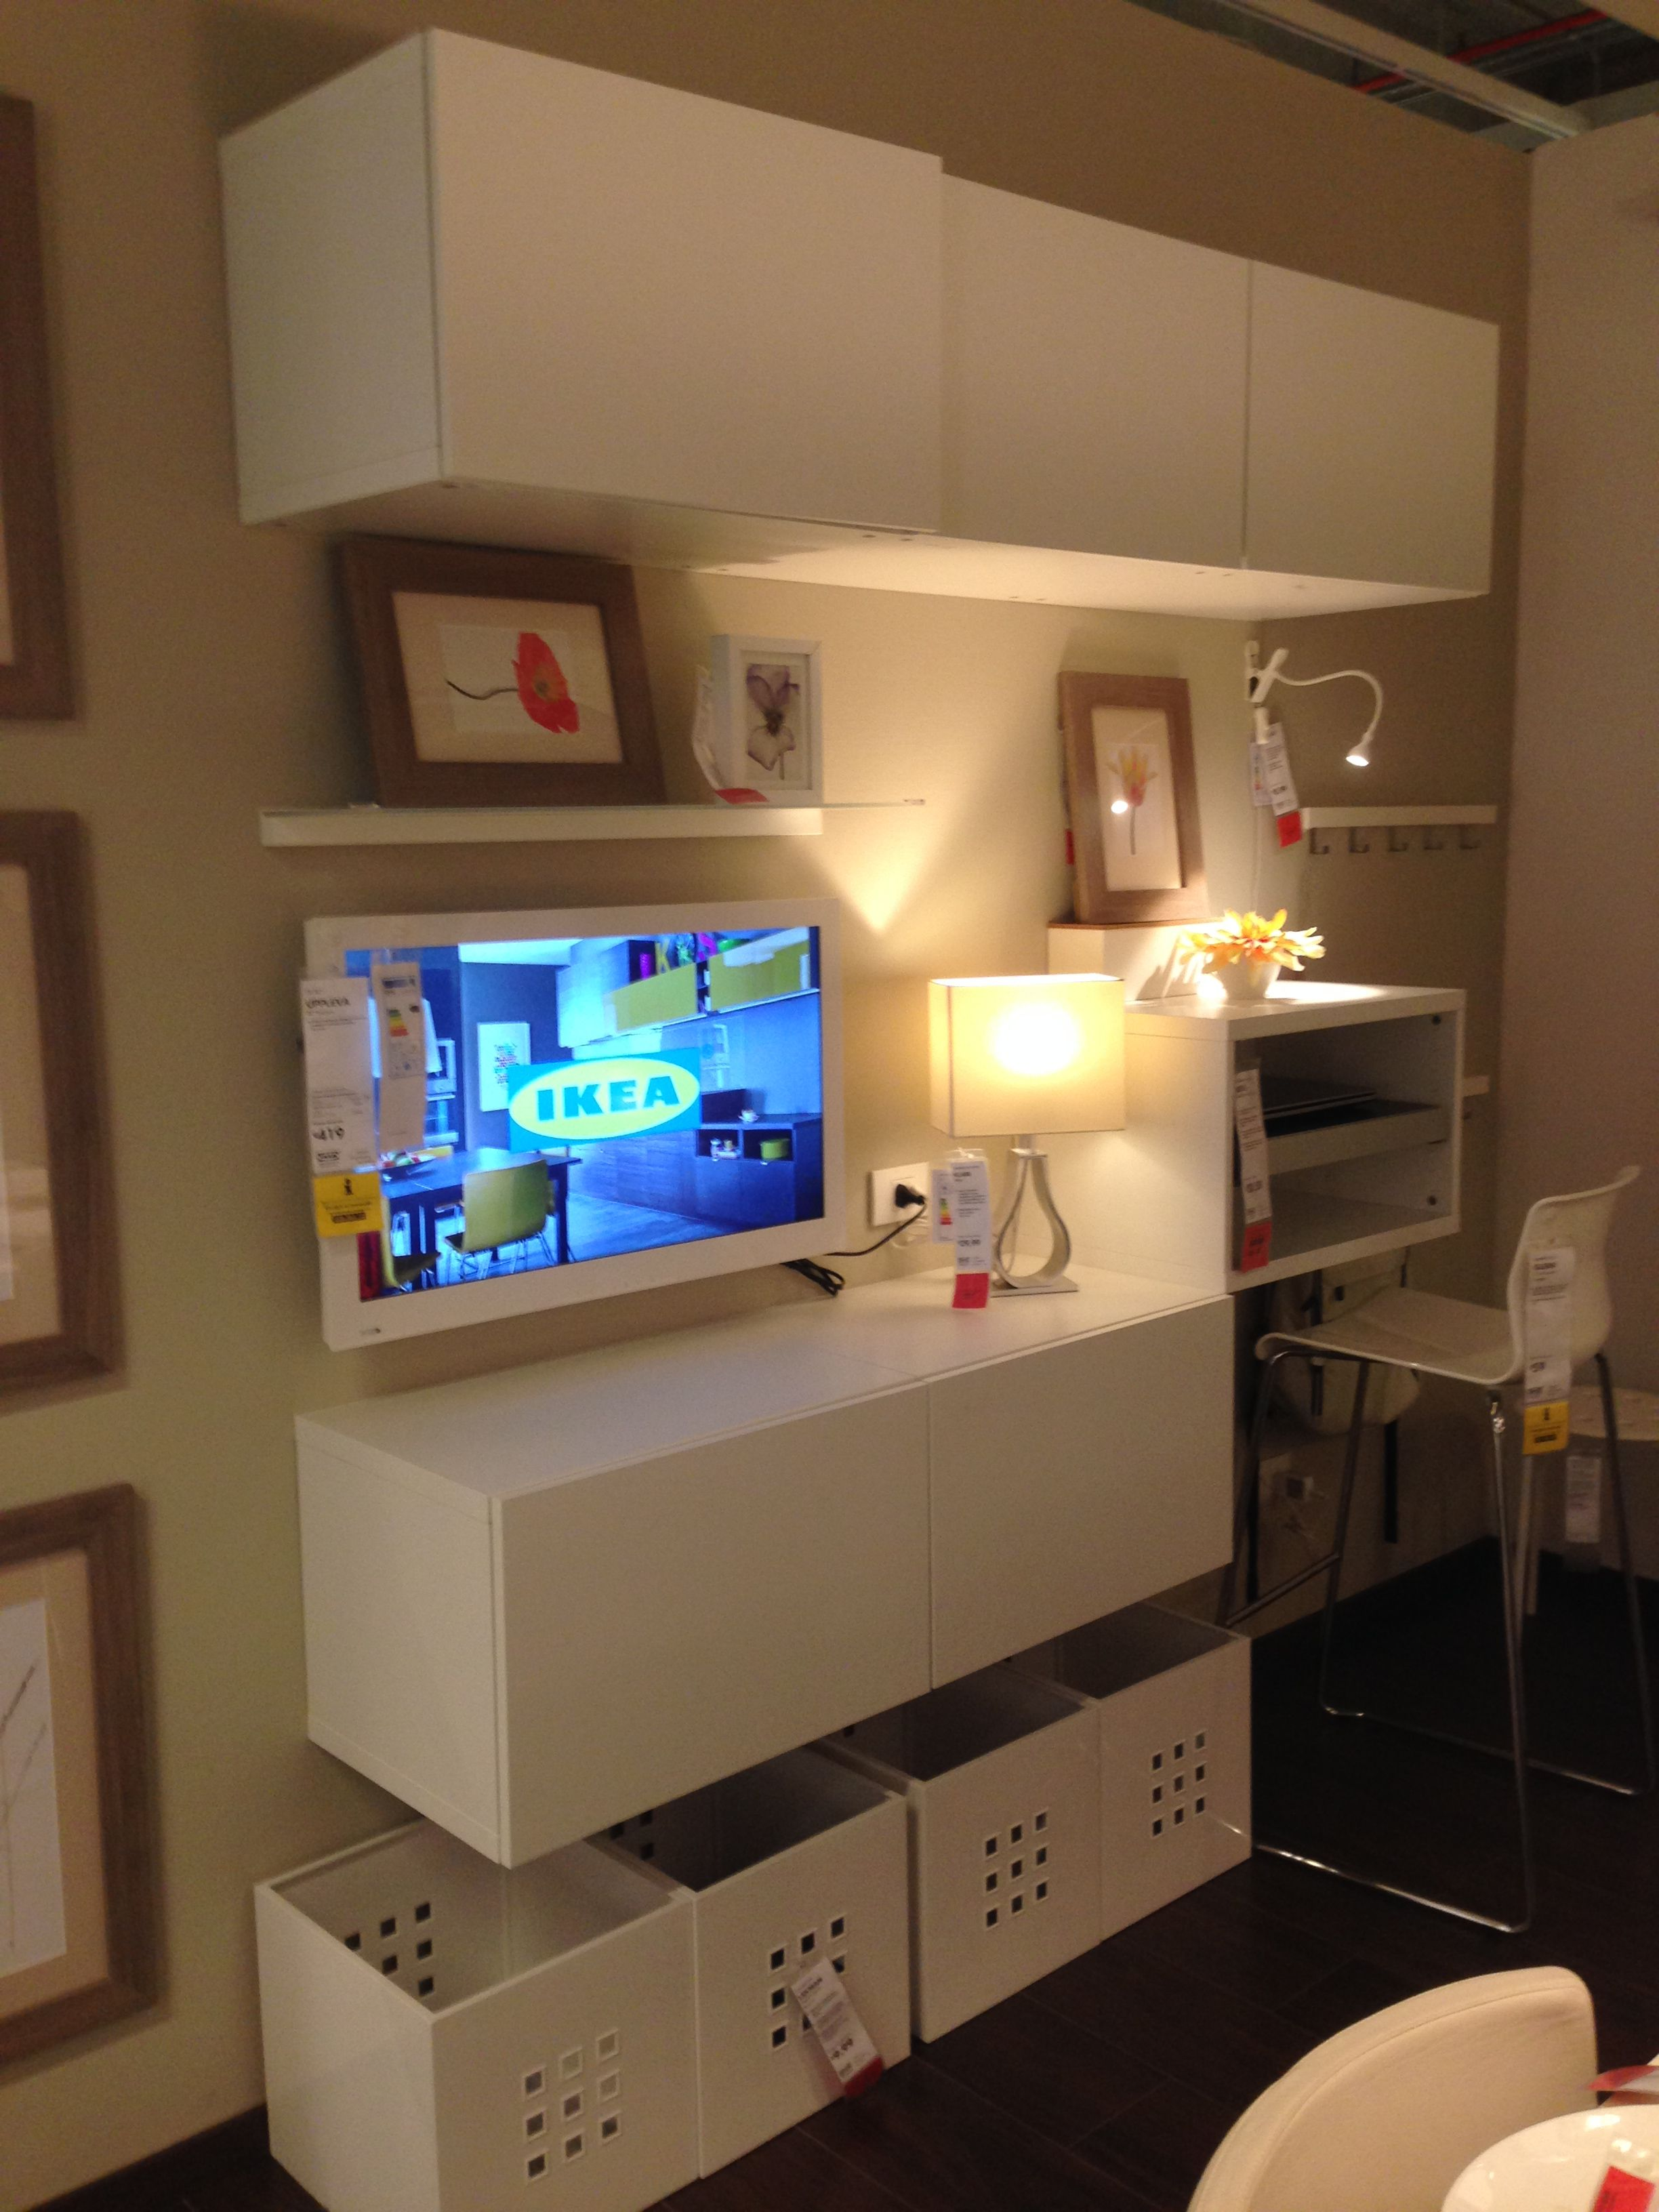 Mobile tv pc ikea per la cucina idee for the home pinterest cucina - Mobile tv angolare ikea ...